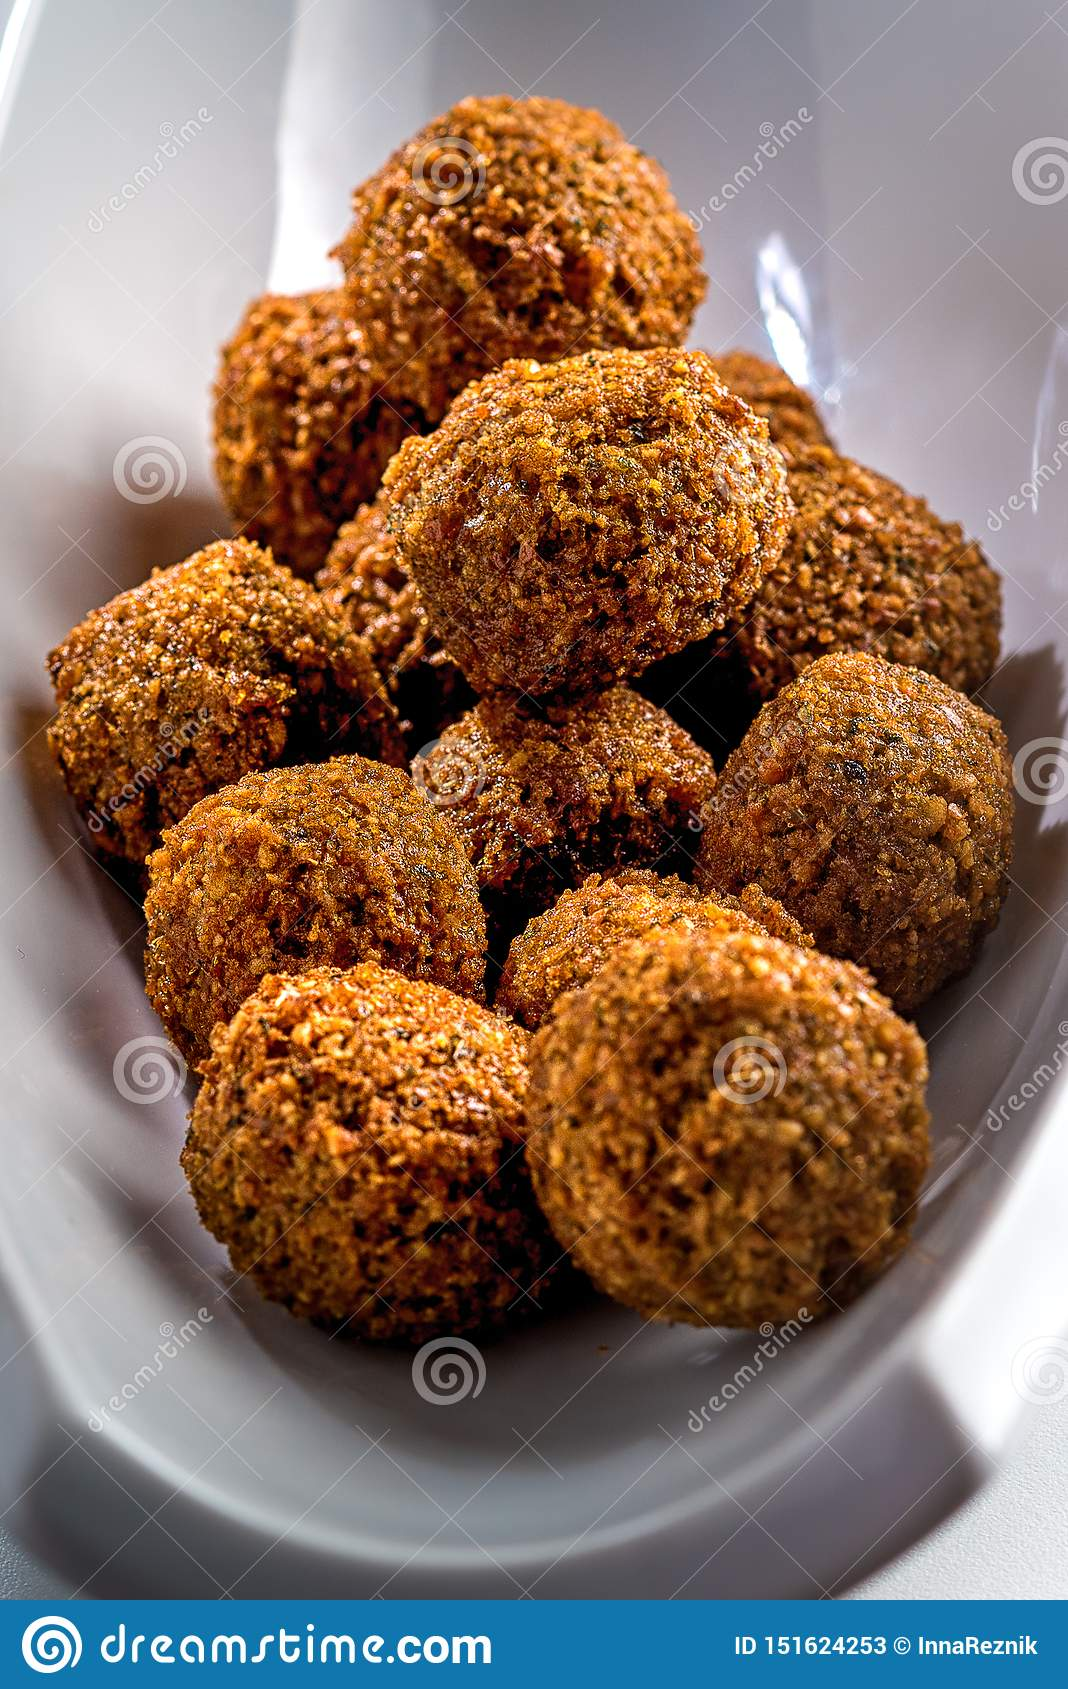 Fantastic and irresistible platter of just-fried falafel balls.